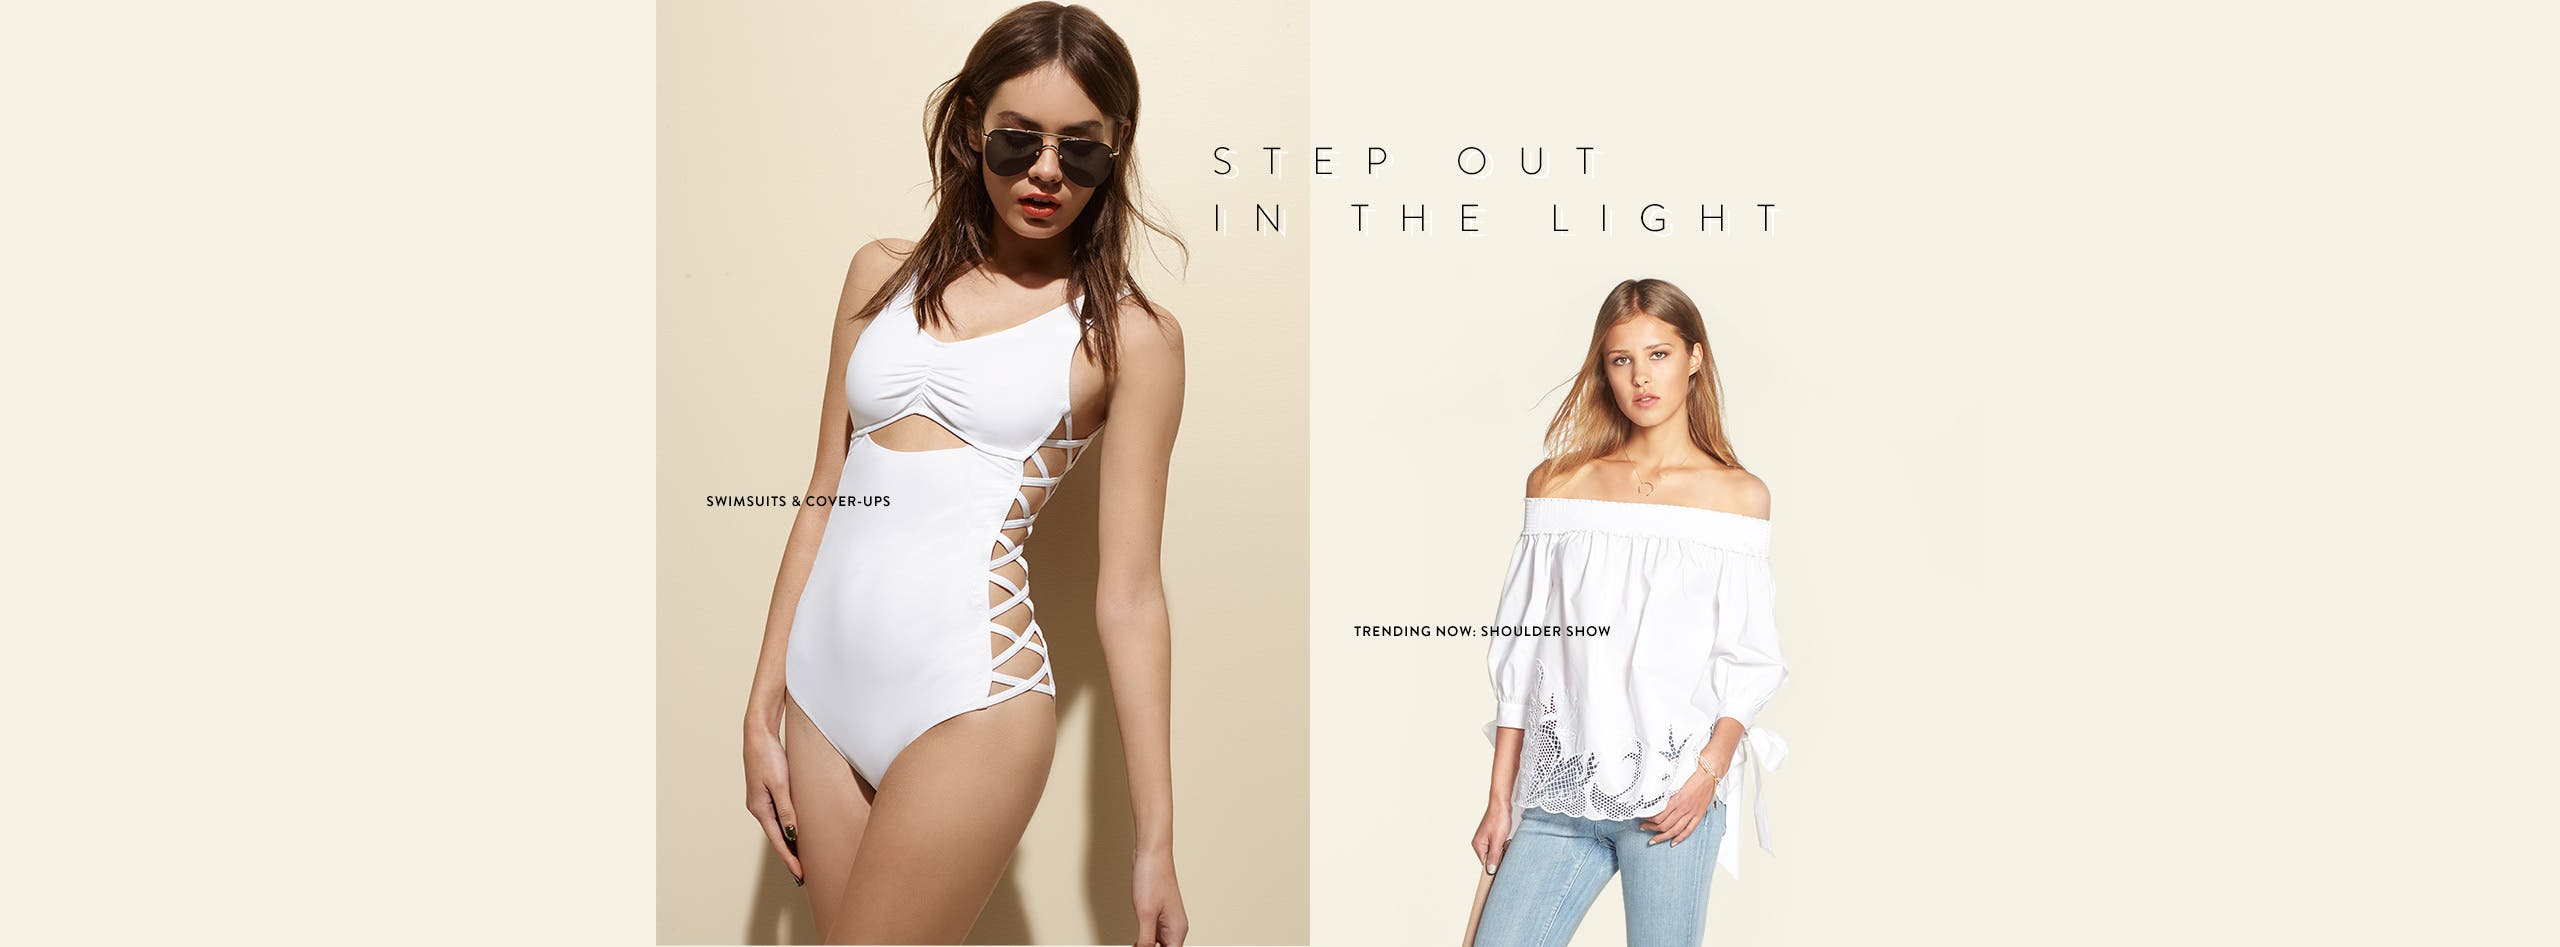 Step out in the light in new swimsuits and cover-ups, plus shoulder-baring tops for summer.